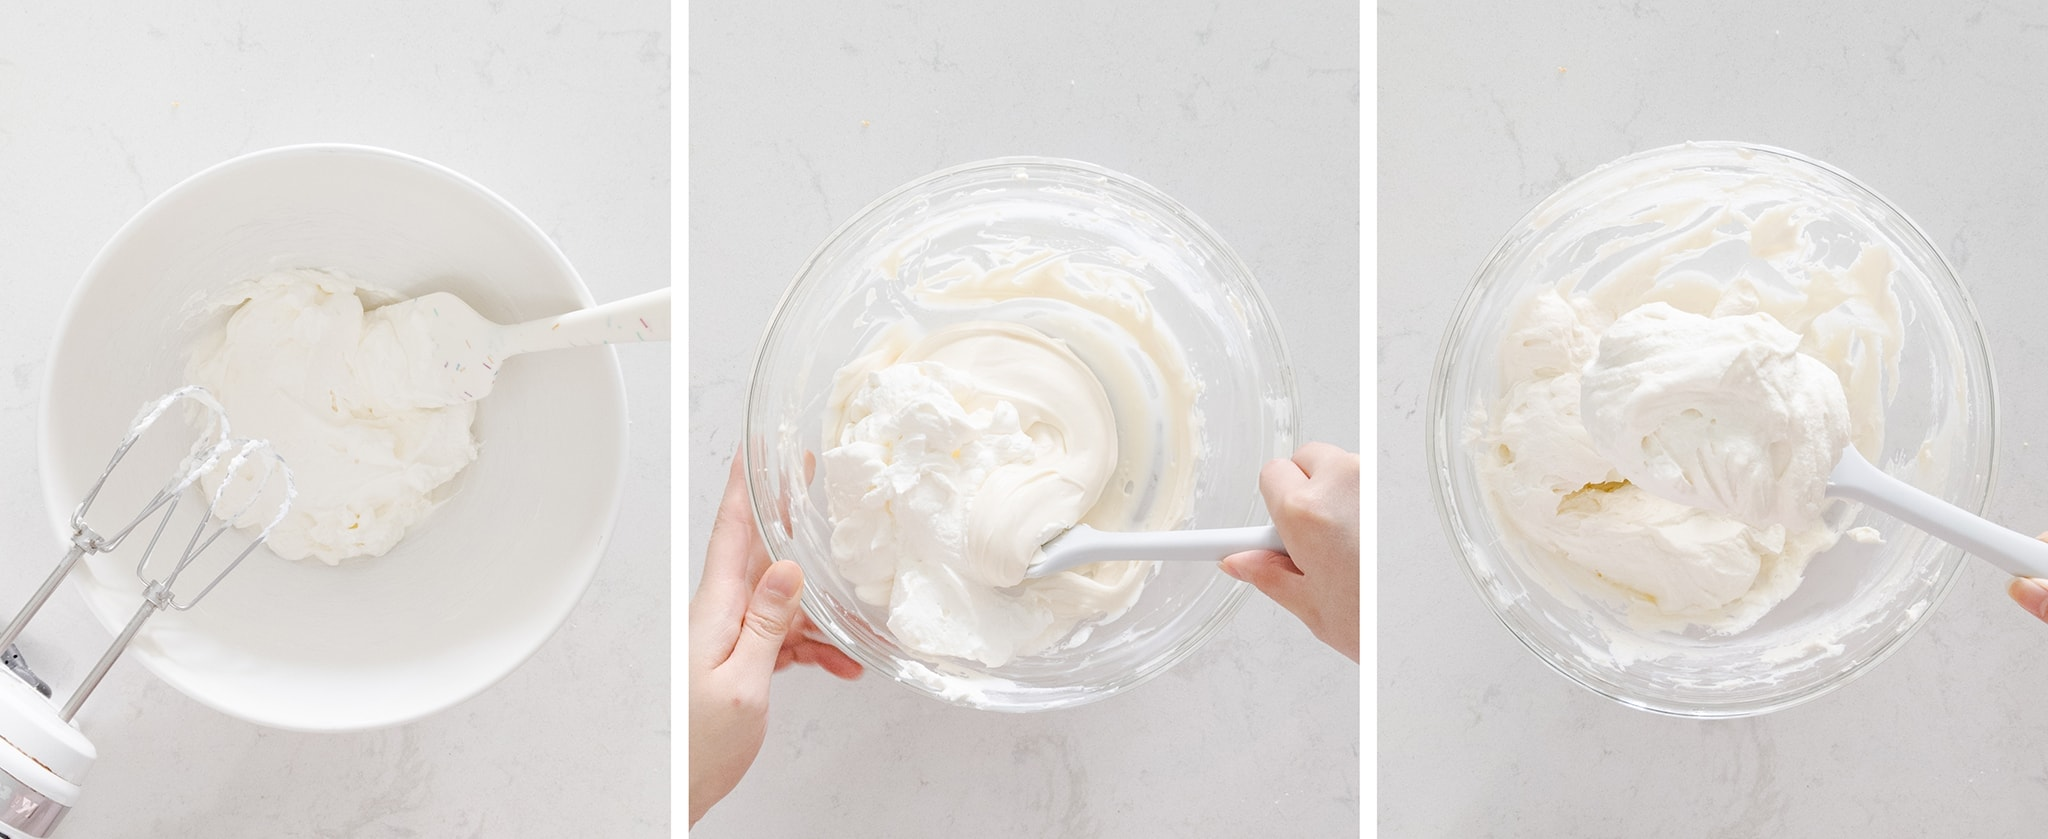 Folding whipped cream and cream cheese together